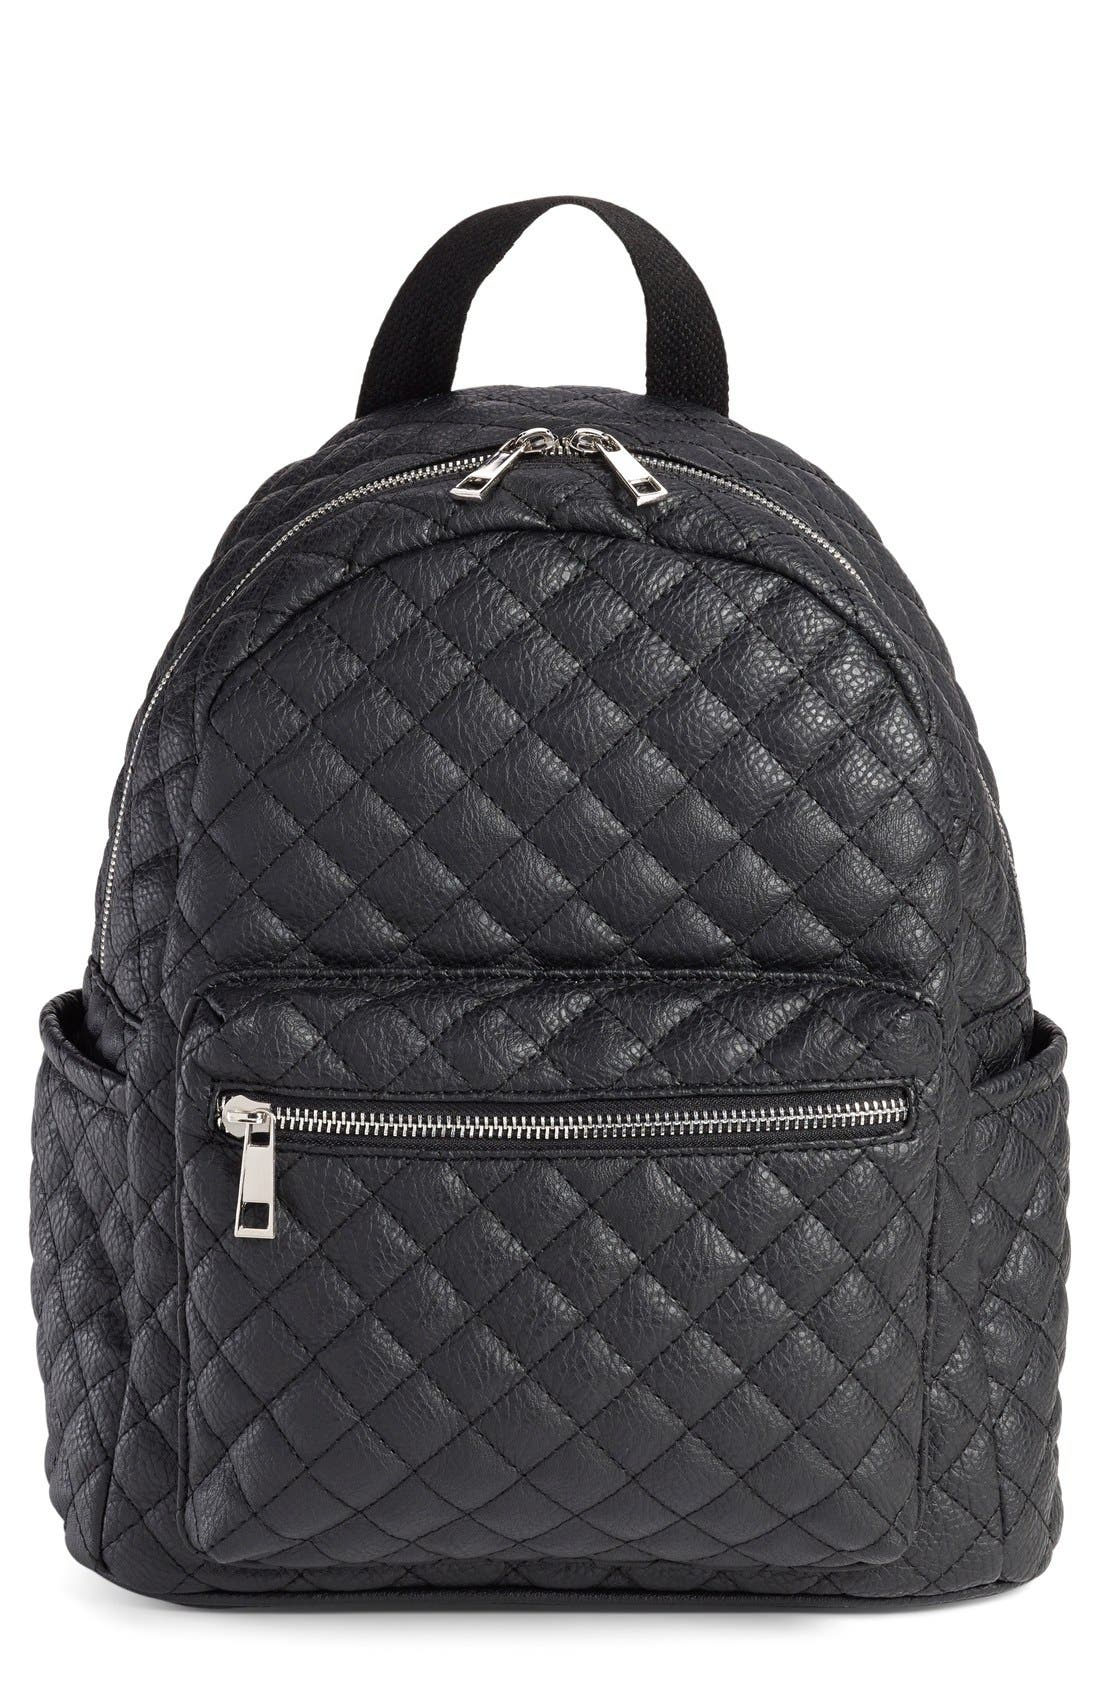 Main Image - Amici Accessories Faux Leather Quilted Backpack